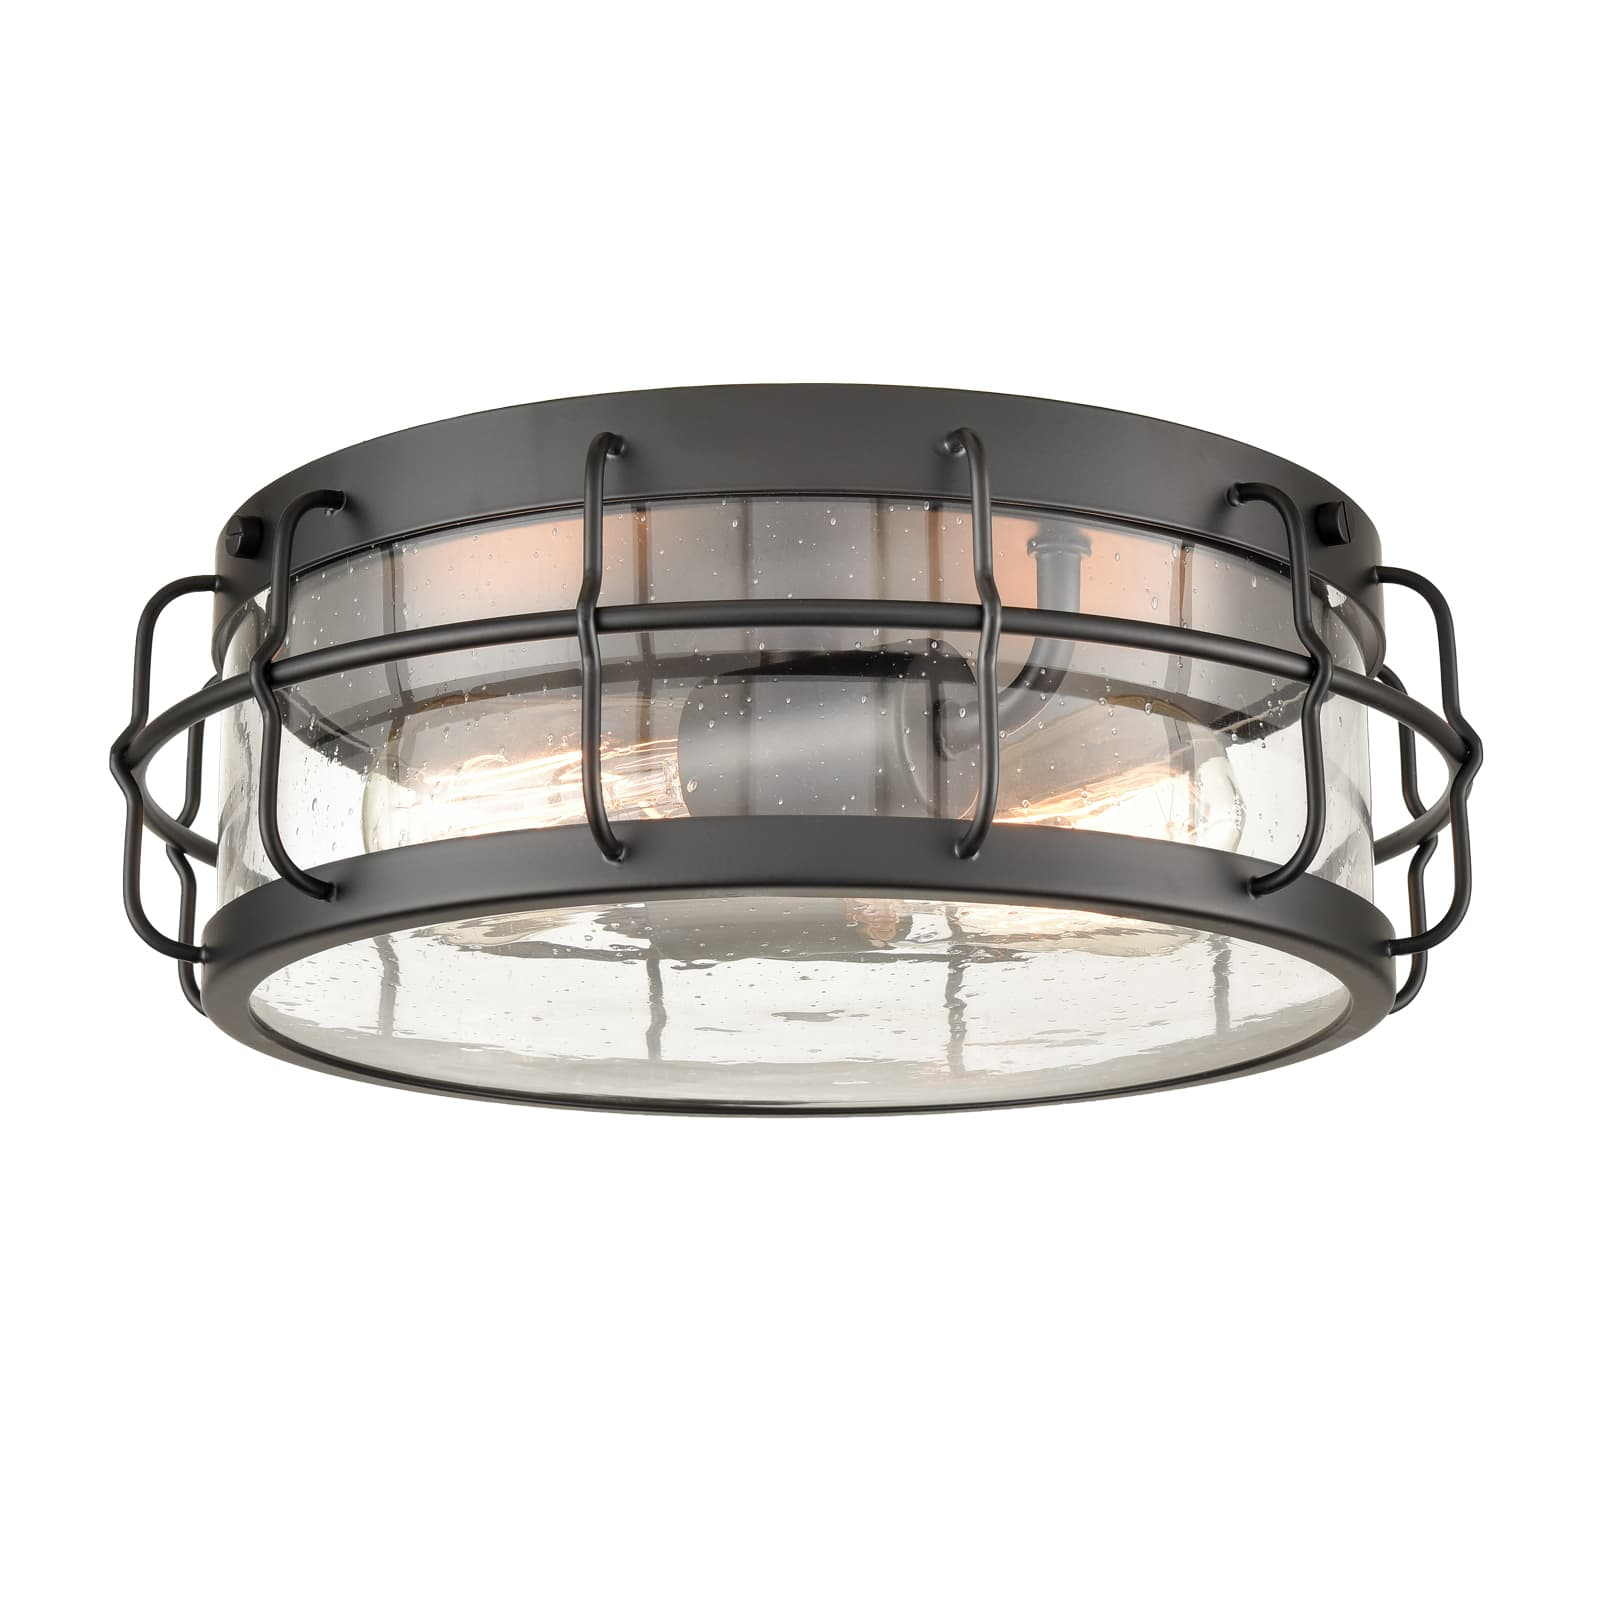 Black Round Ceiling Light Flush Mount with Clear Seedy Glass Shade